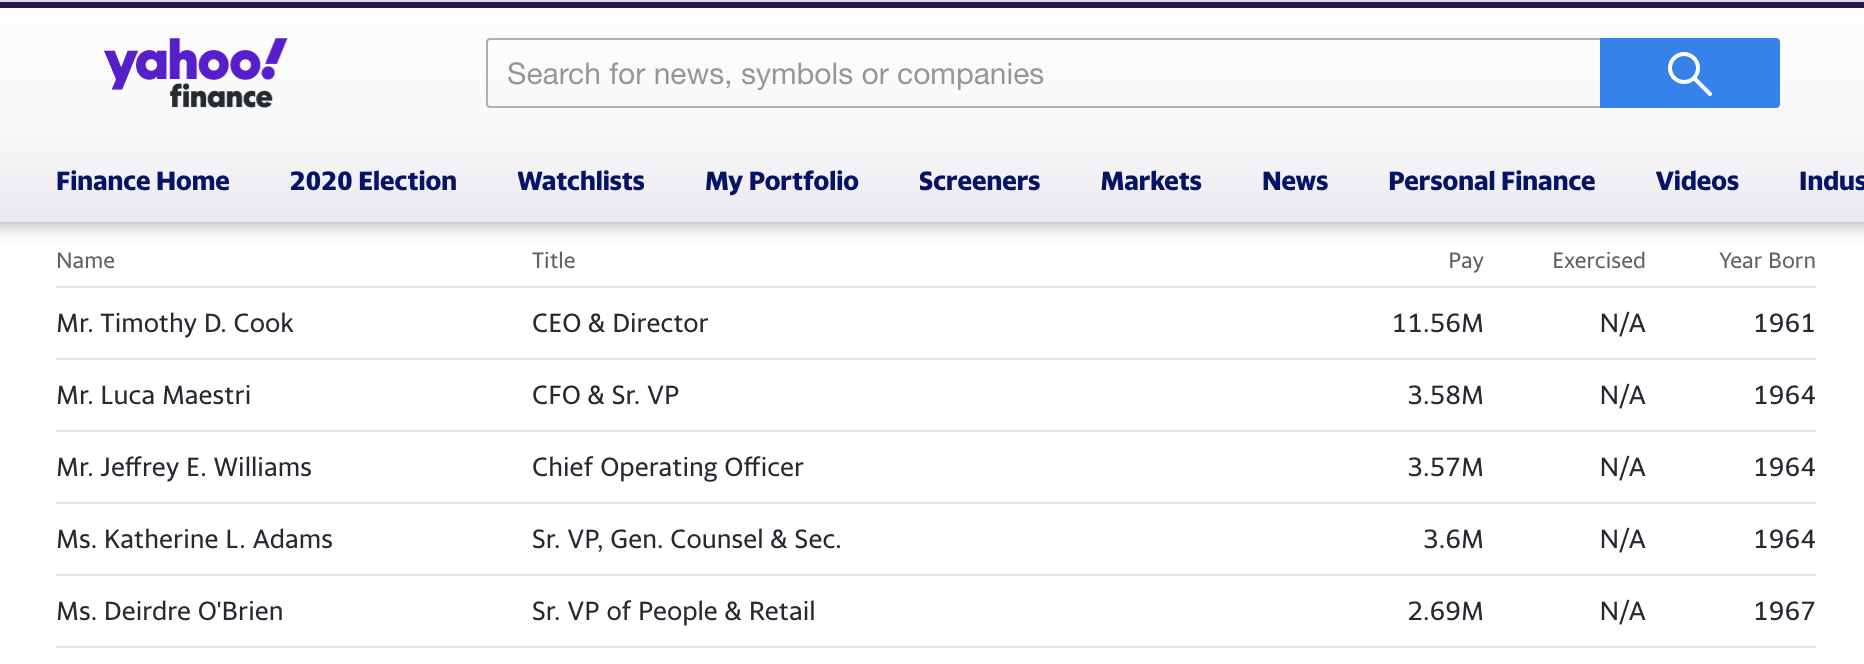 Extracting Financials from Yahoo